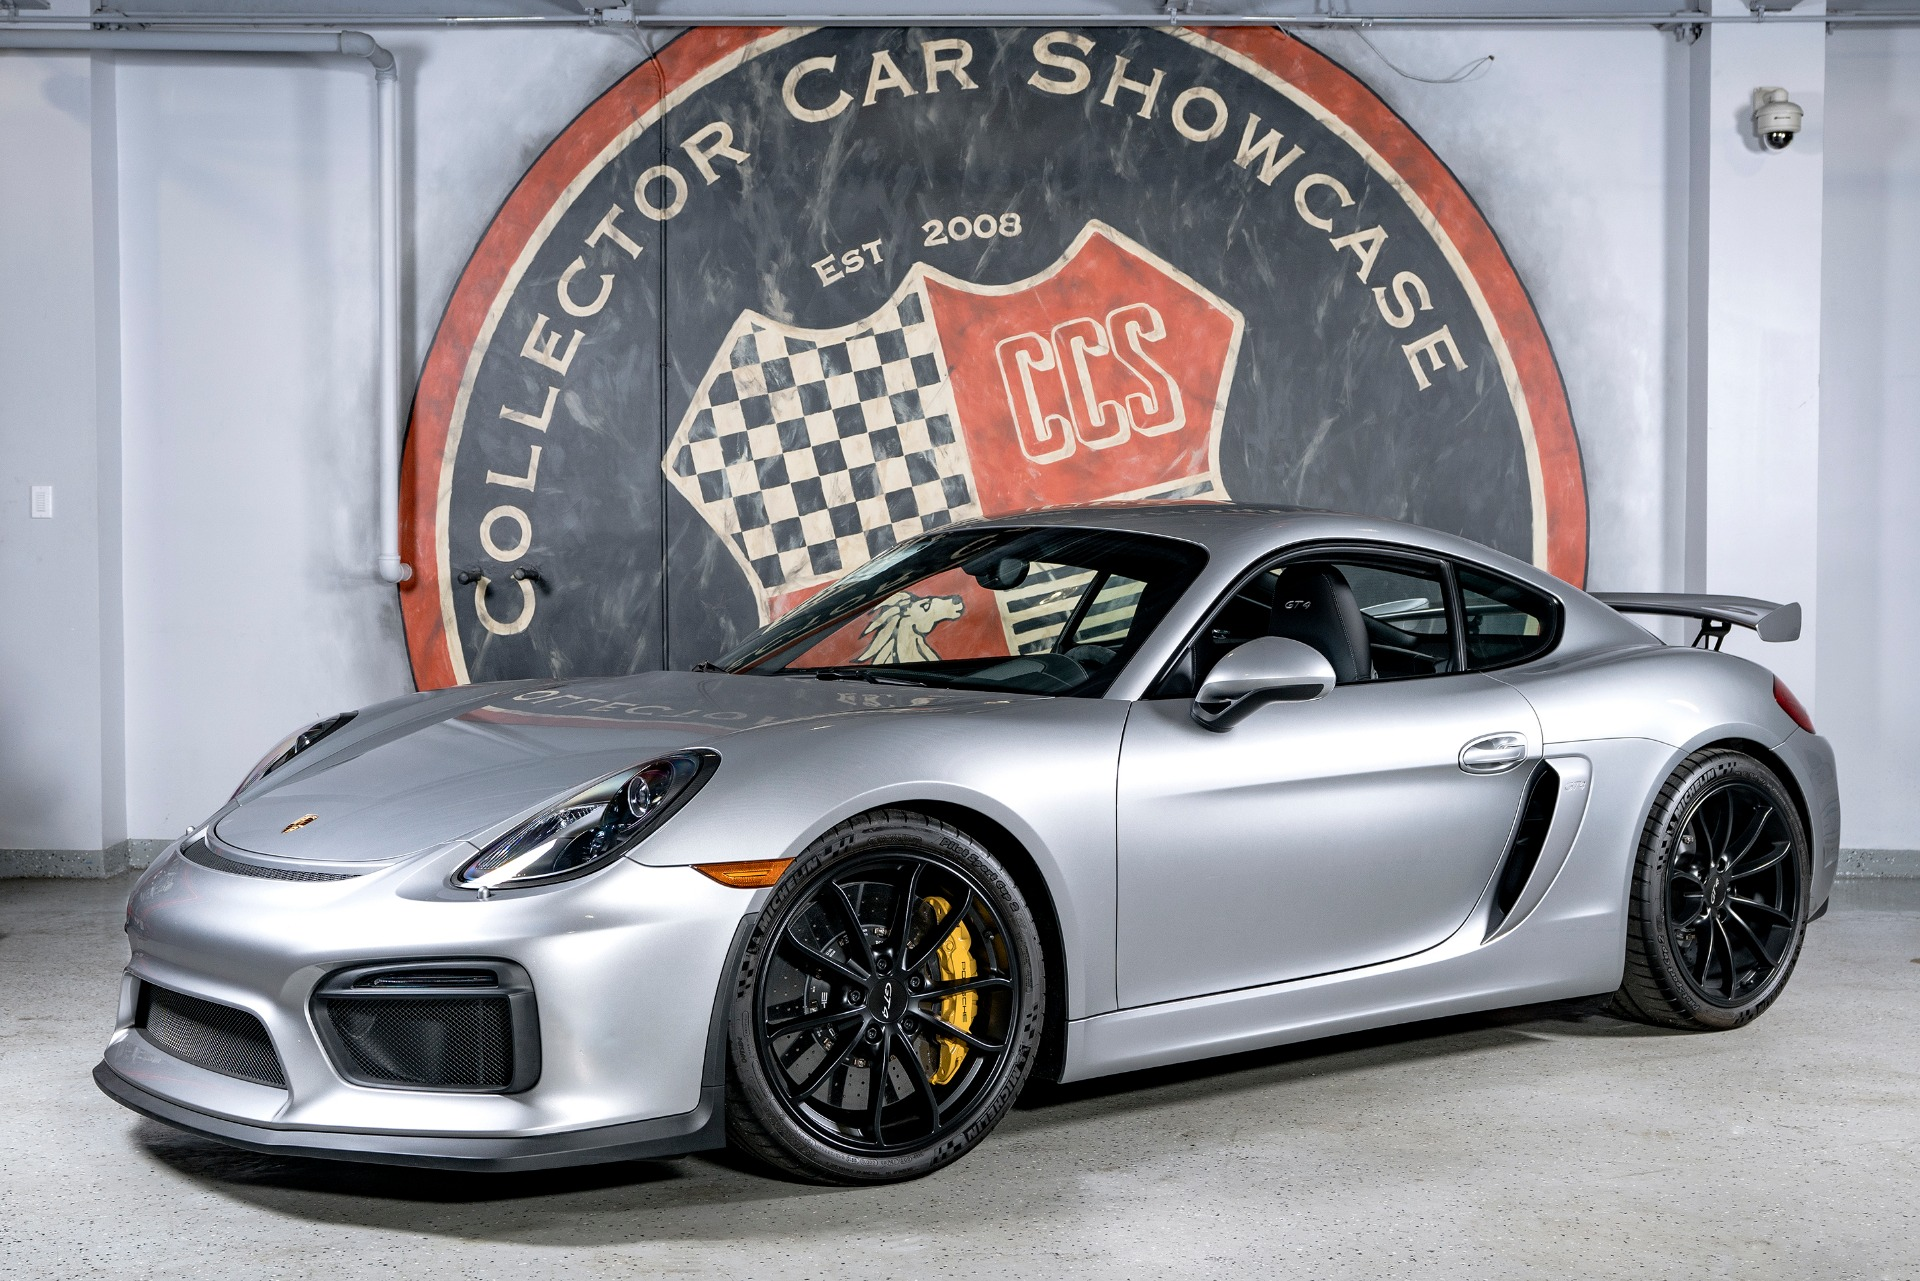 2016 porsche cayman gt4 stock 1289 for sale near oyster bay ny